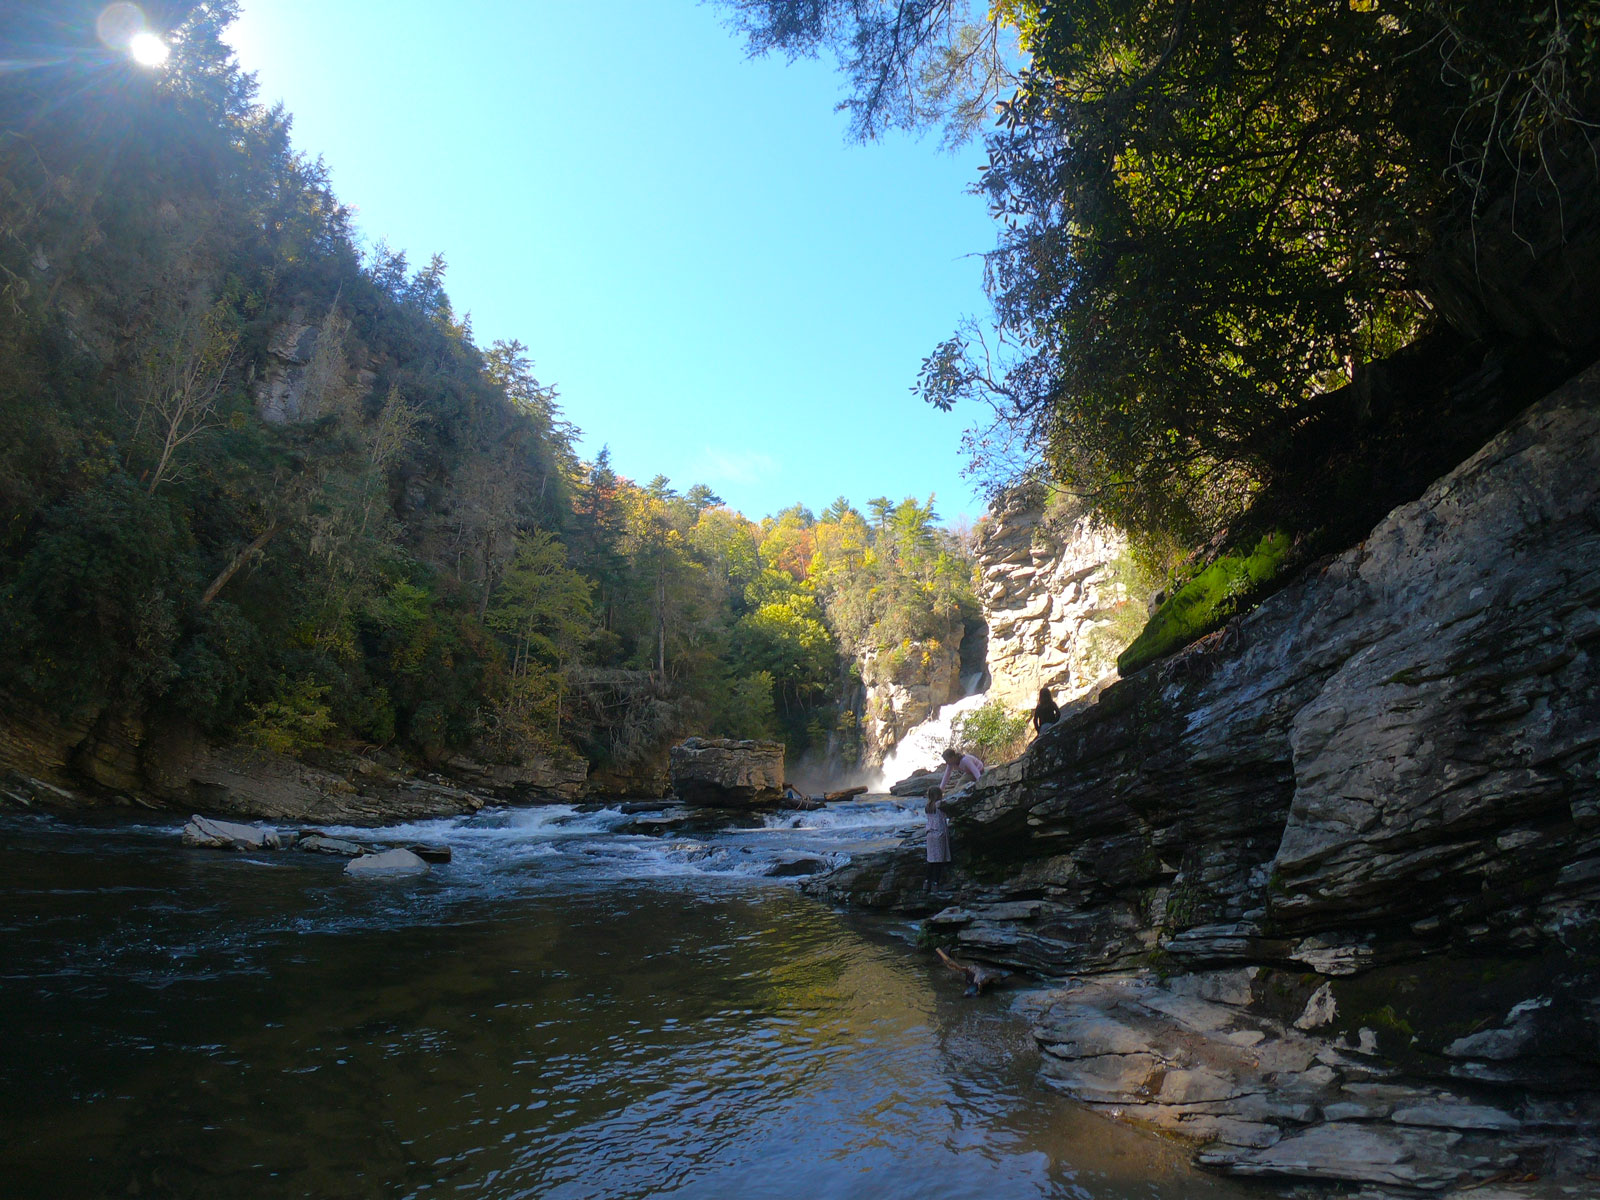 View of Linville Falls from the bottom in Blue Ridge Mountains